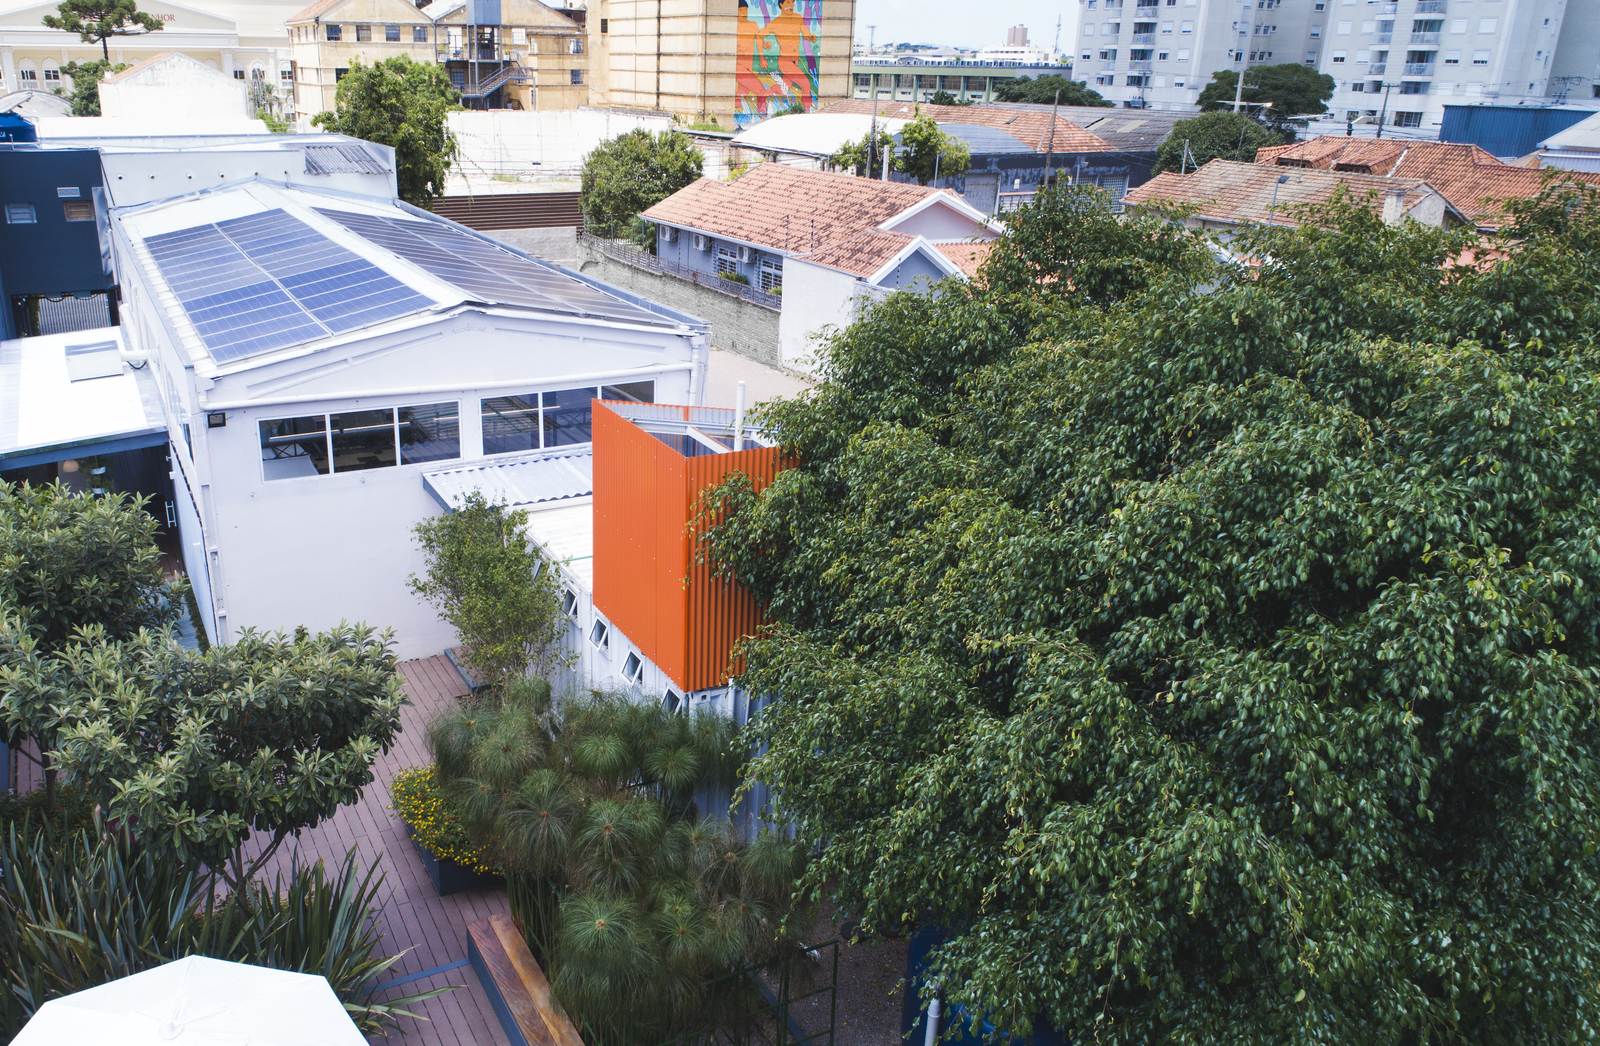 Petinelli Curitiba LEED Platinum and LEED Zero offices